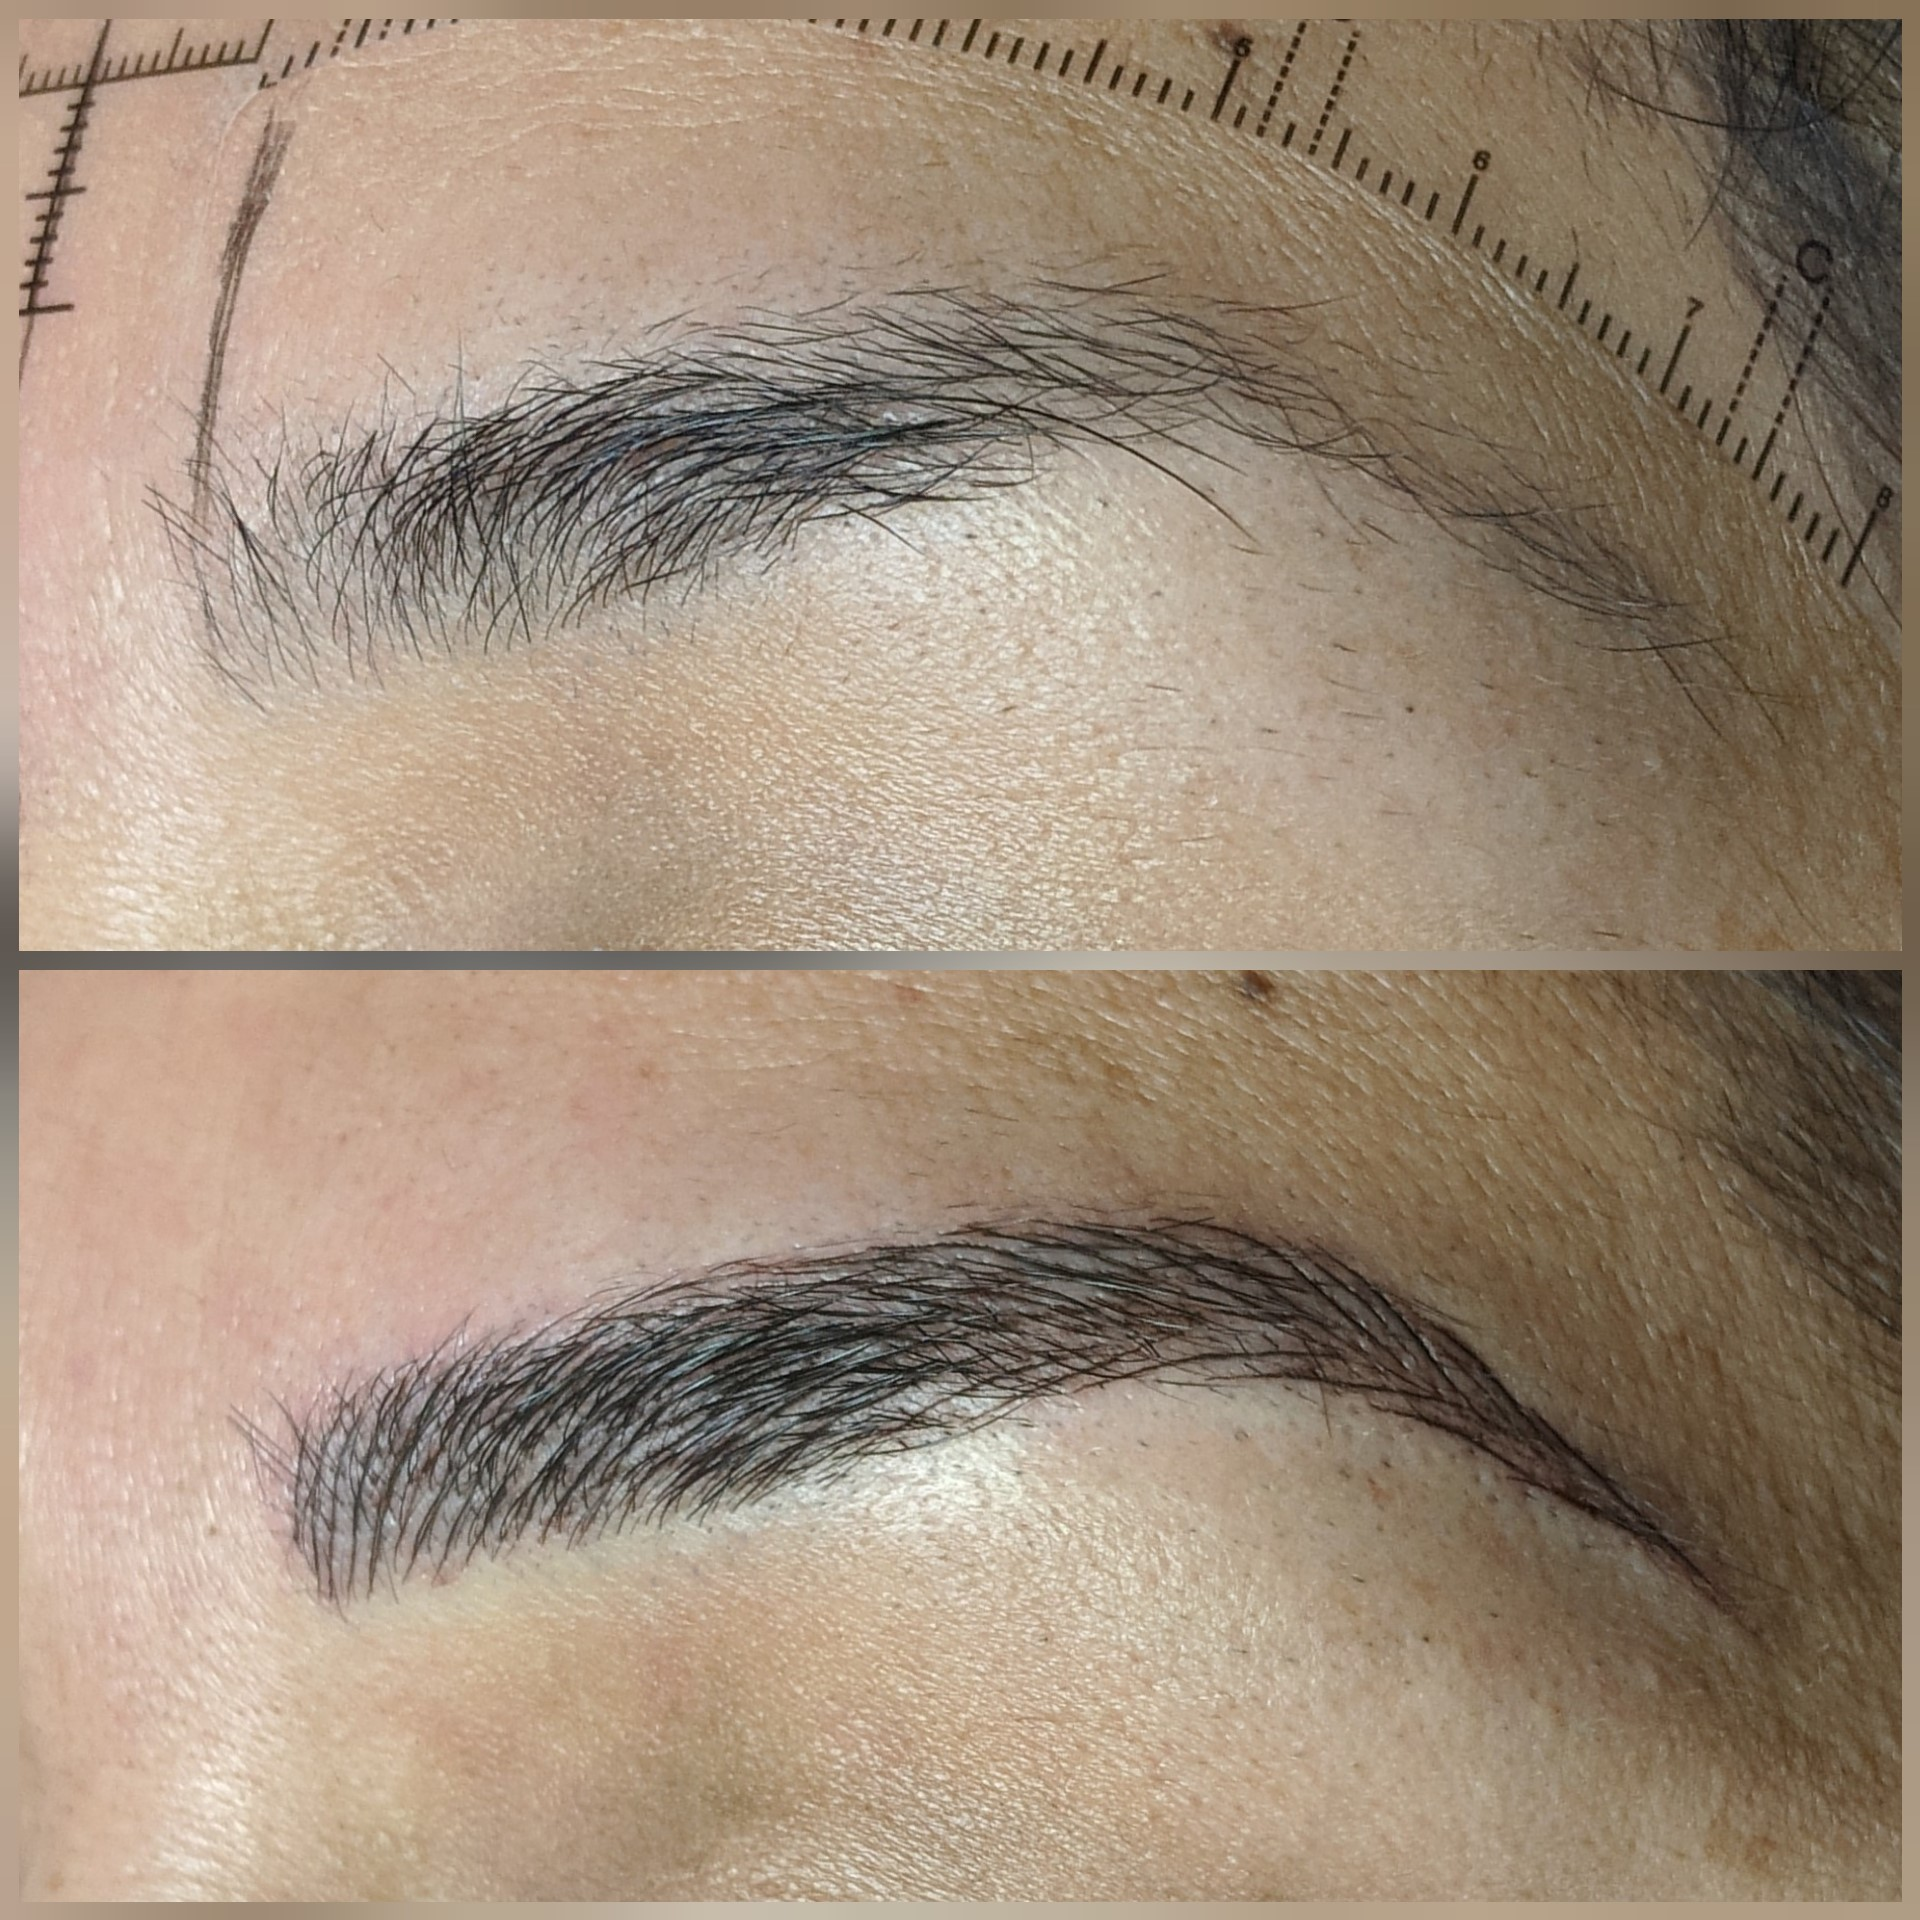 Microblading - Pure Skin Solutions - Your Skin Care Experts